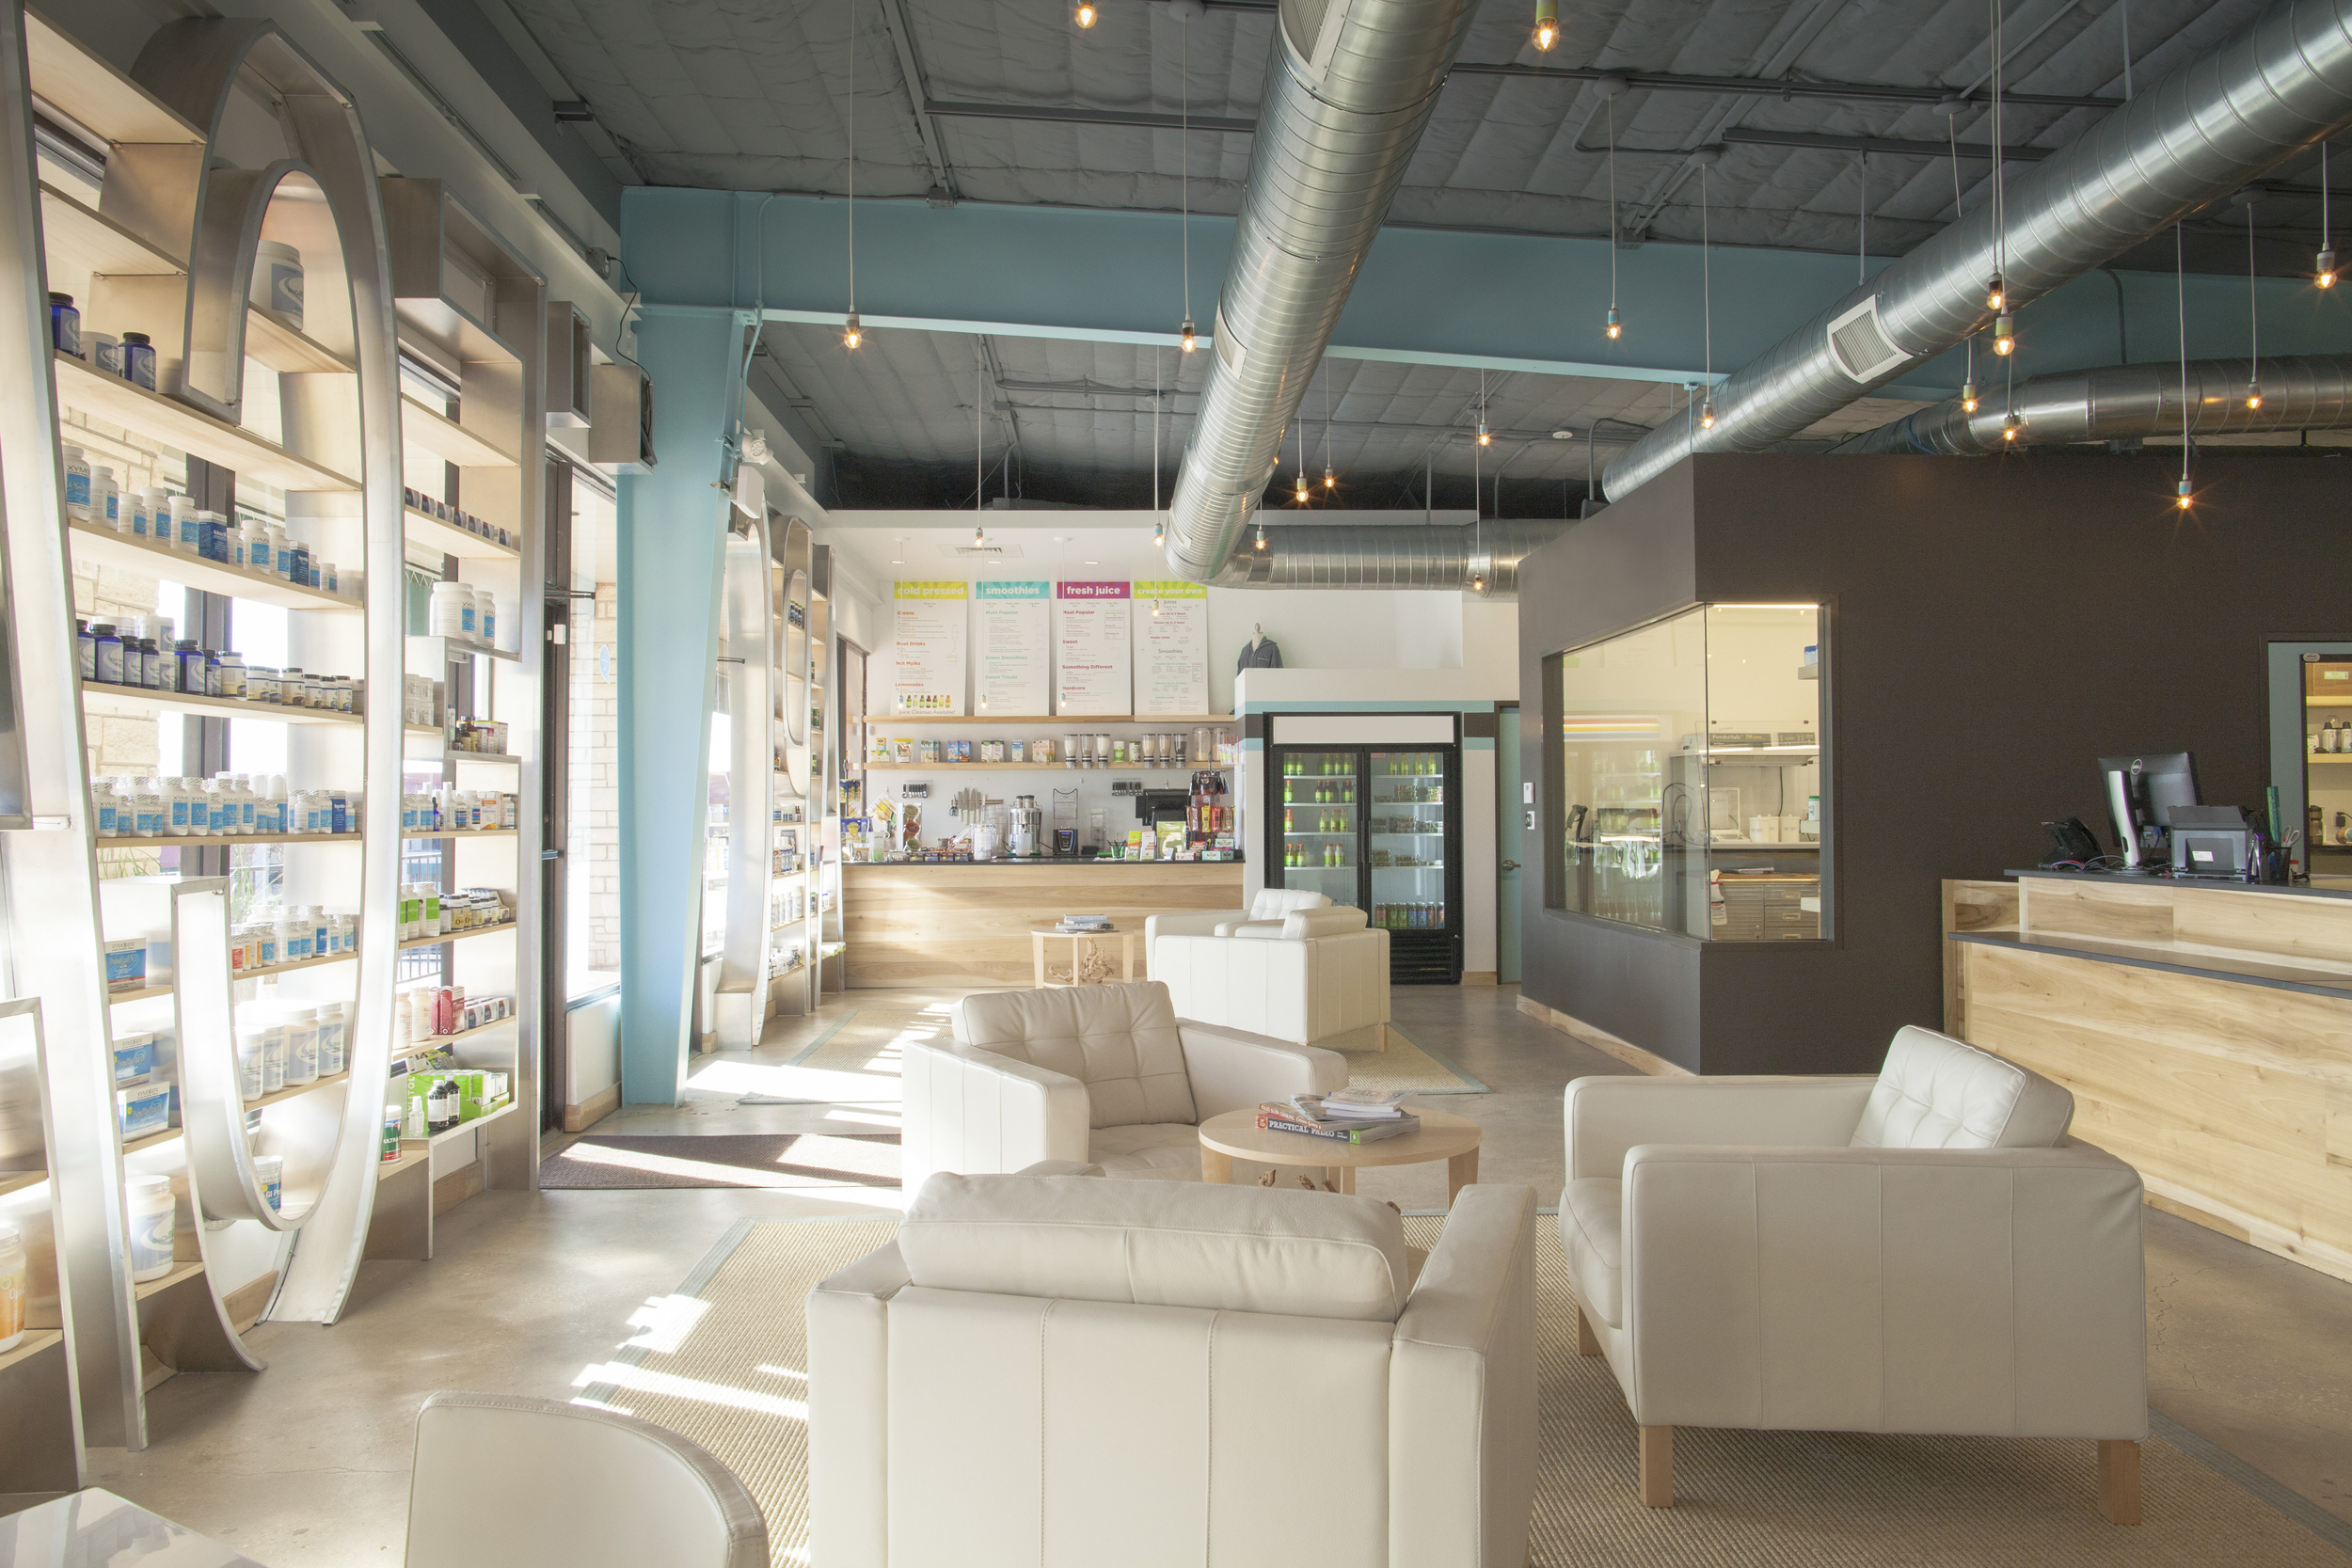 2015_0107 Matt Fajkus MF Architecture Hill Country Apothecary Interior 6.jpg